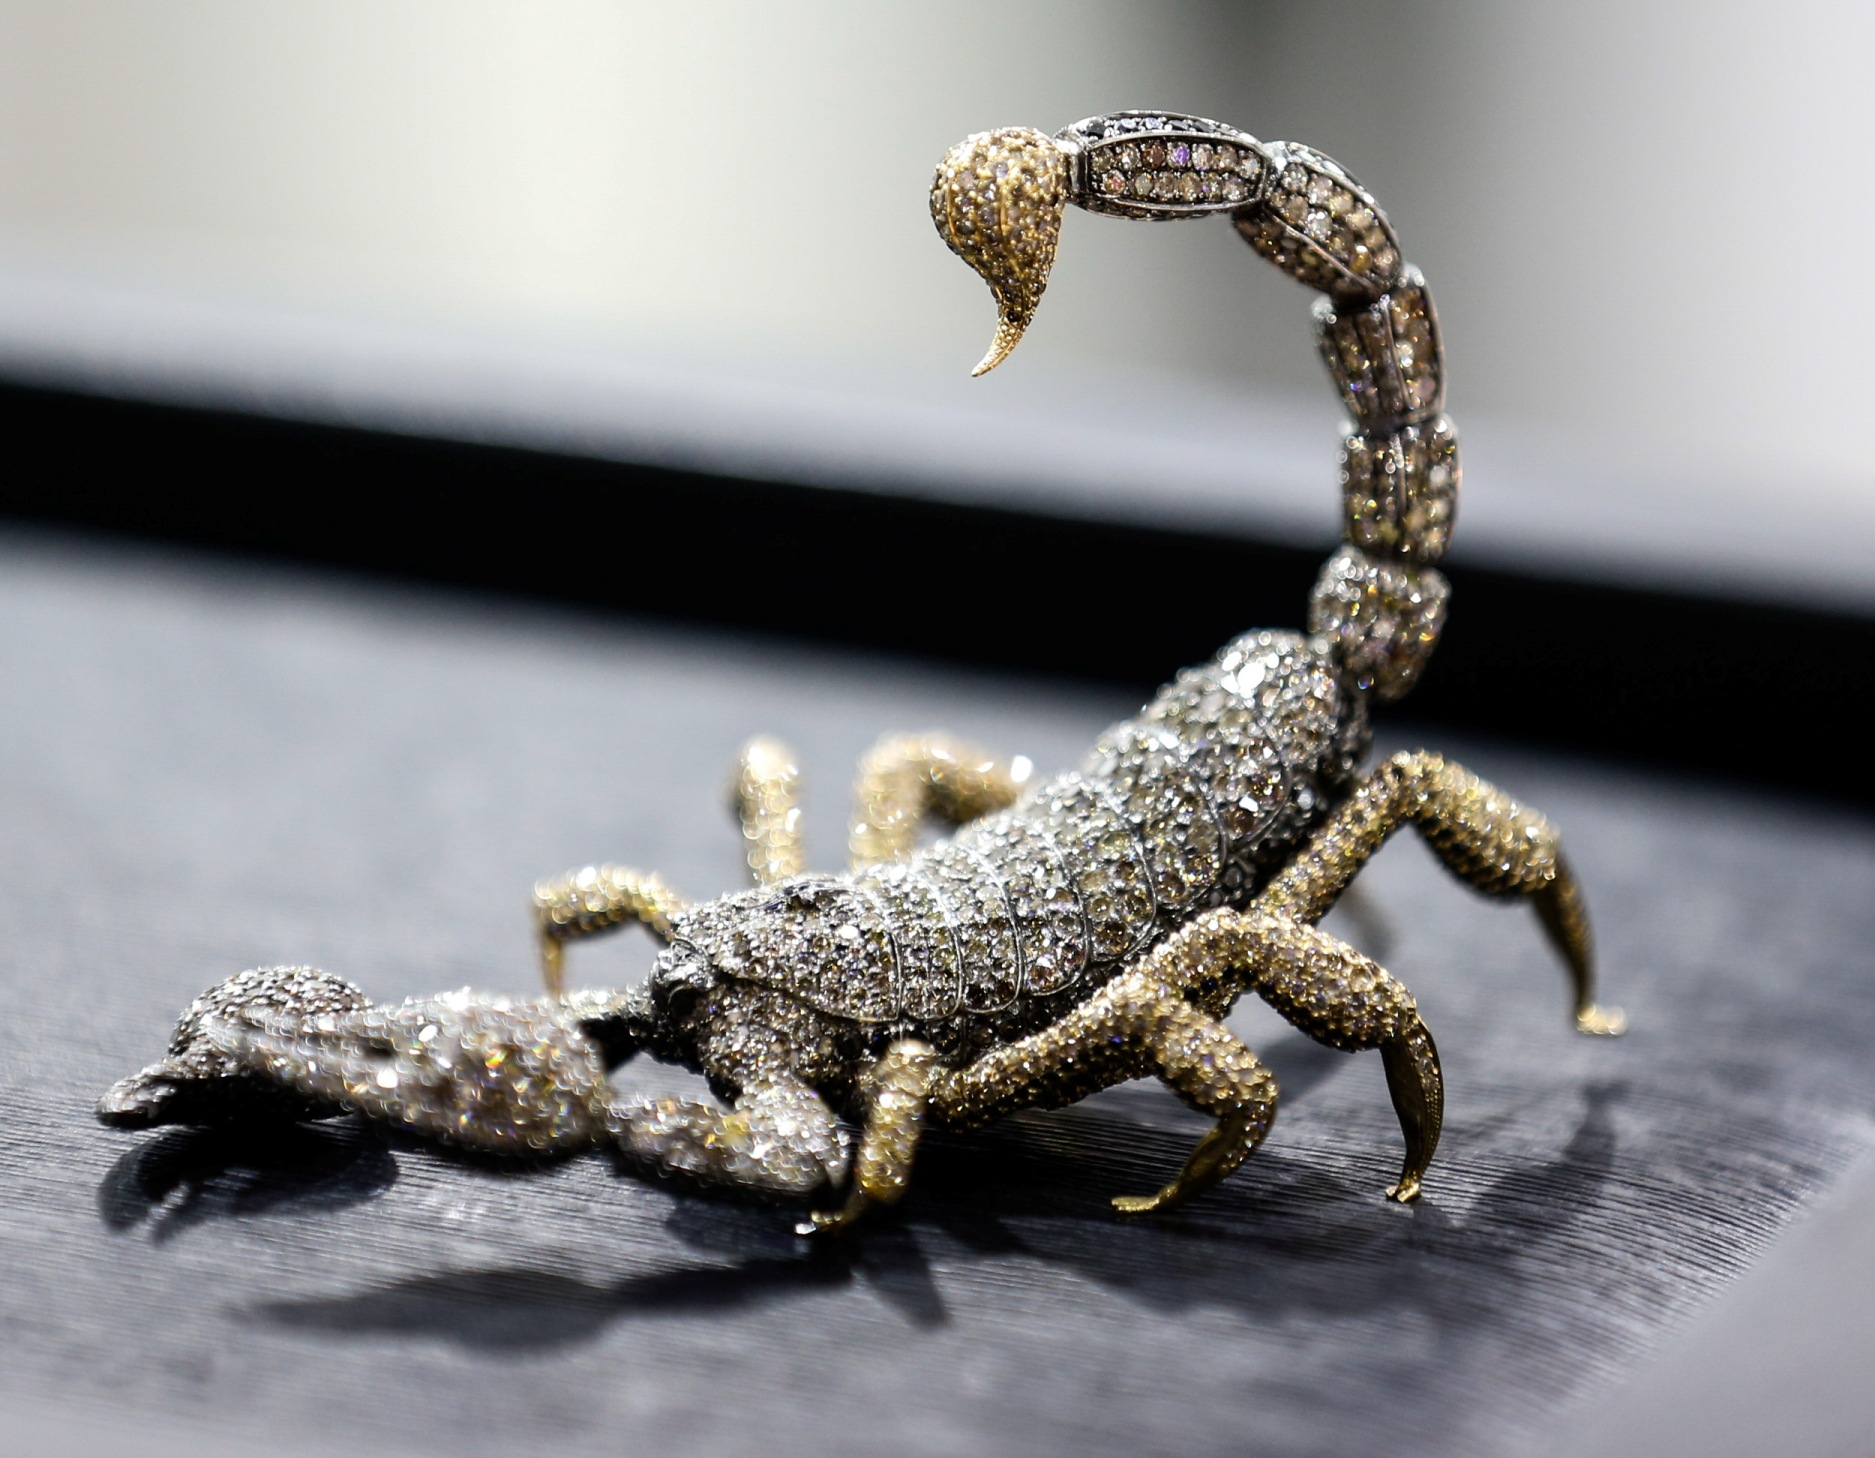 The Scorpion is made from 69 Ct diamonds and contains 3.480 stones. With a base made of 69 Ct gold, the piece is inspired by the designer and his spouse being Scorpios.